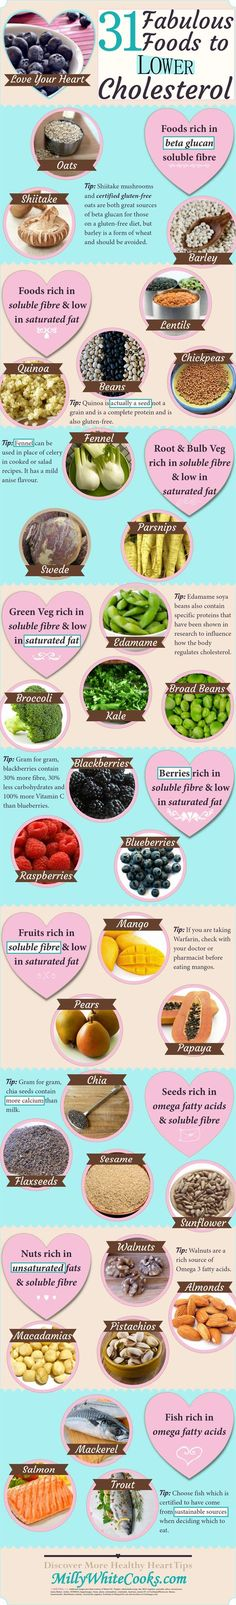 31 Fabulous Foods To Lower Cholesterol #Infographic can actively help to lower #cholesterol levels, including rich sources of beta glucan soluble fibre, omega fatty acids, unsaturated fats and foods low in saturated fat. #HeartHealth #LowFat read more @ http://www.millywhitecooks.com/2015/06/31-fabulous-foods-to-lower-cholesterol.html